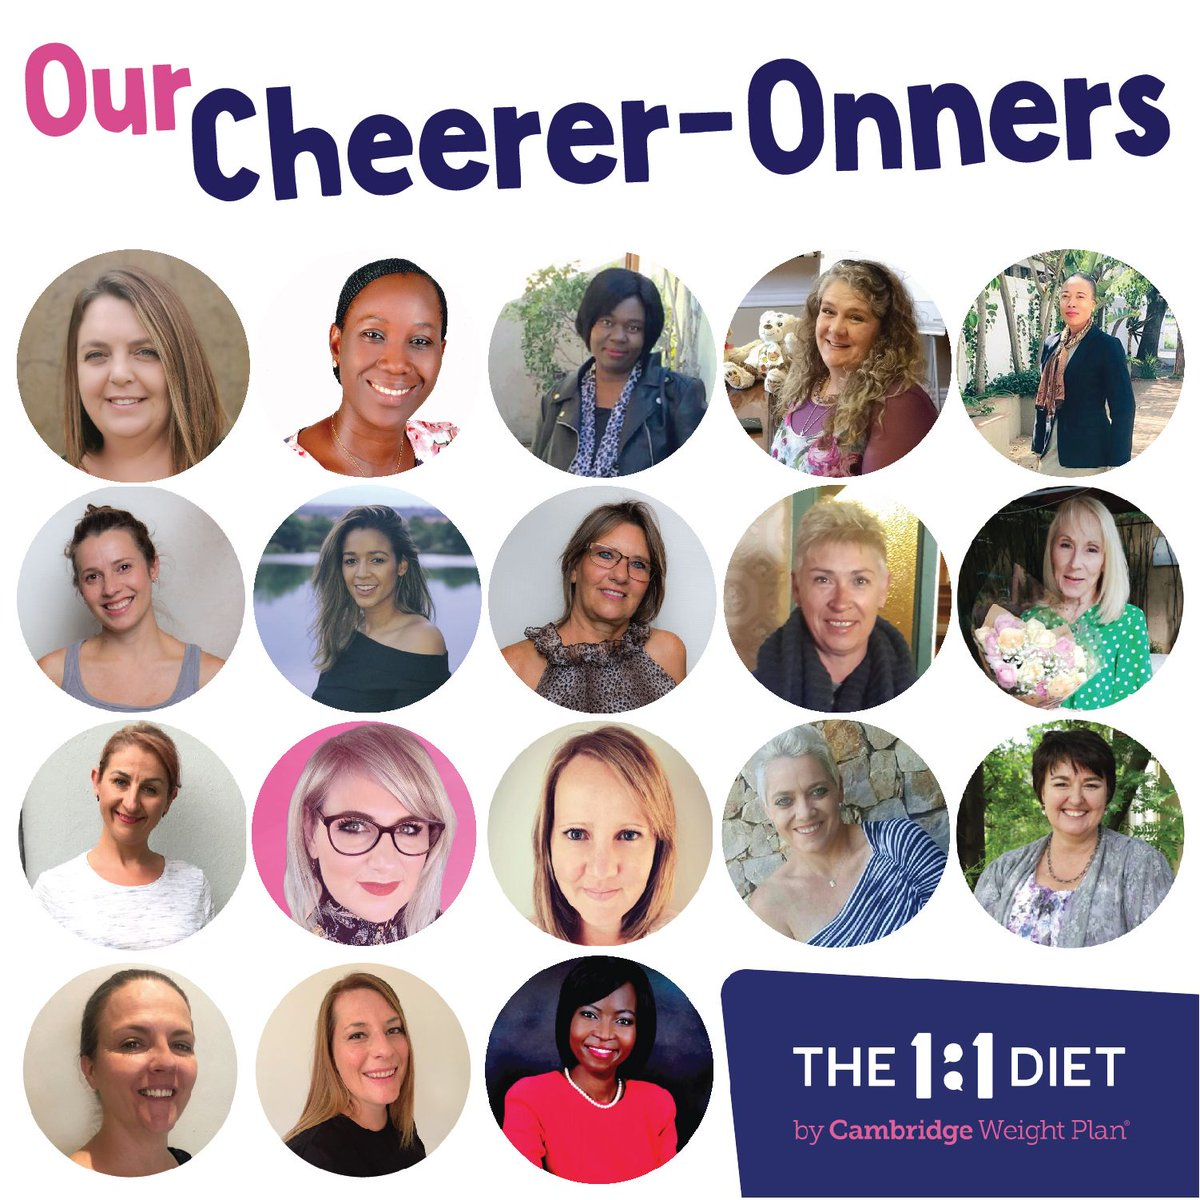 Oh yeah. You'll smash your goals on The 1:1 Diet - your very own cheerer-onner is with you every step of the way!  Give it a go and find your local Consultant today   #one2onediet #one2onedietchallenge #weightloss #summerbody #wellness #healthylifestyle